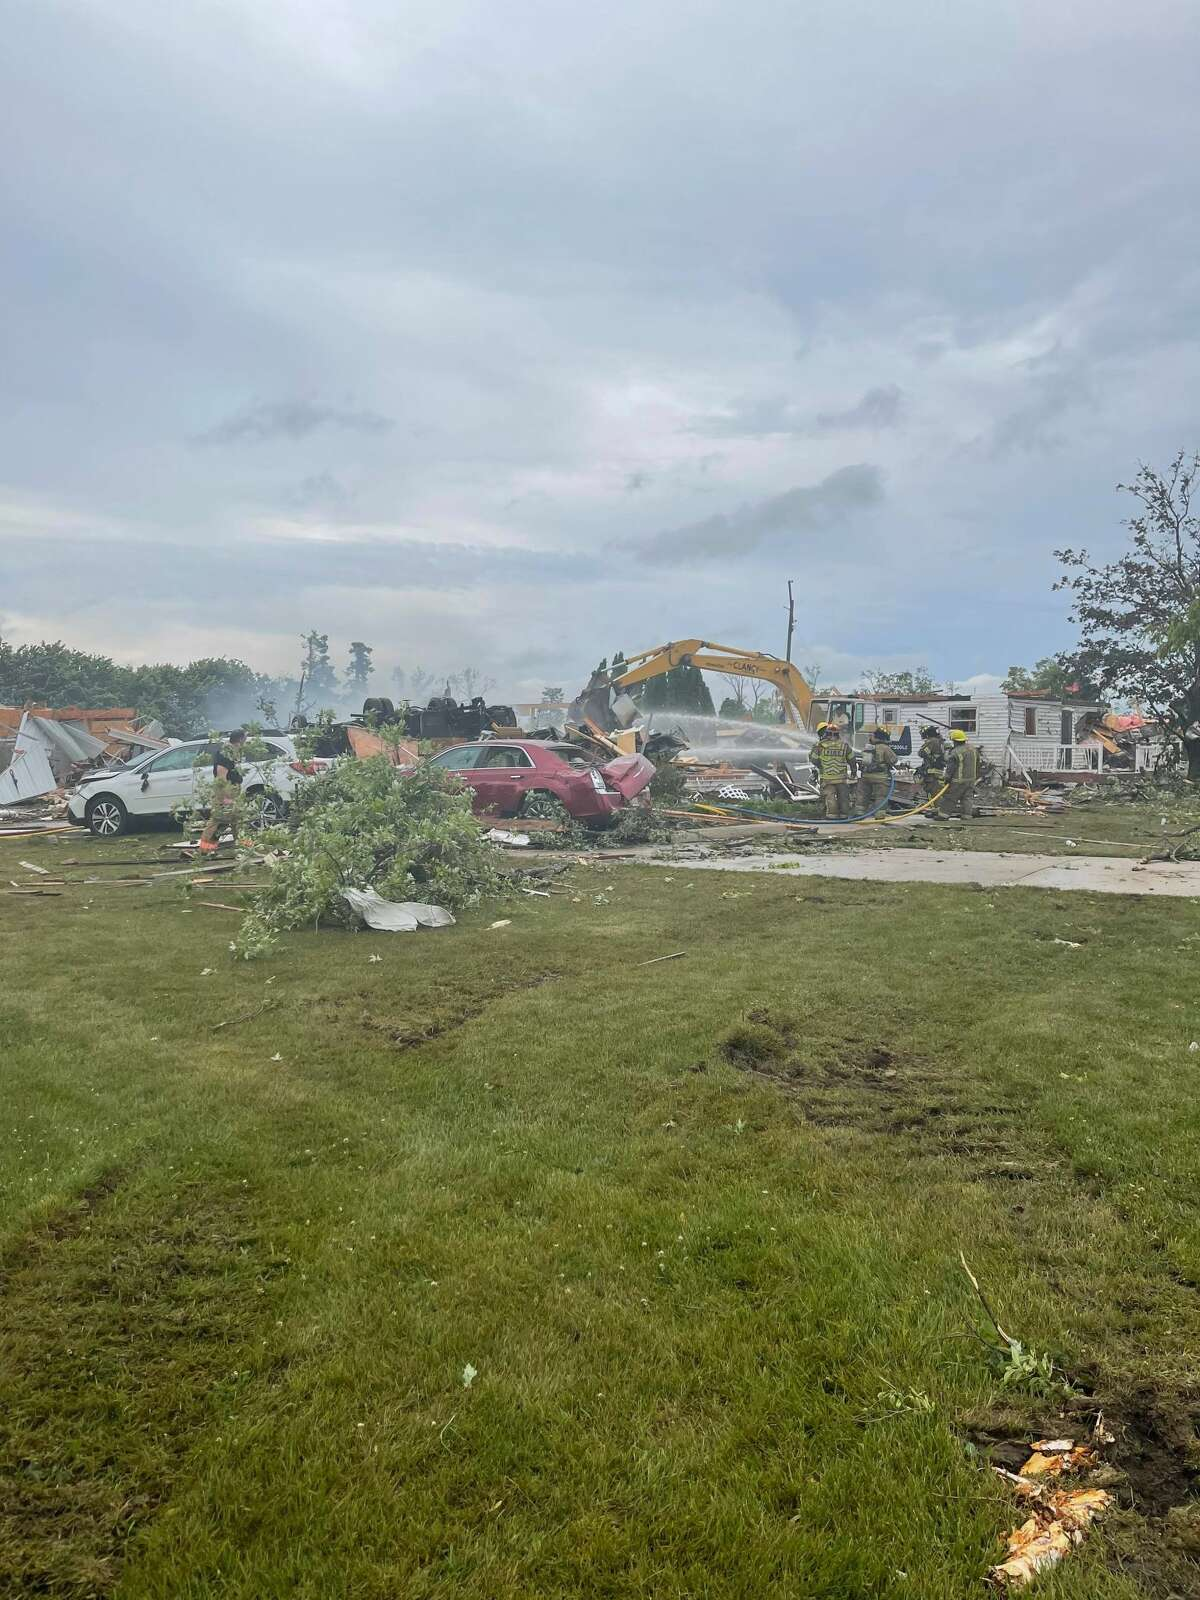 Dozens of homes and properties were damaged by the tornado June 27.